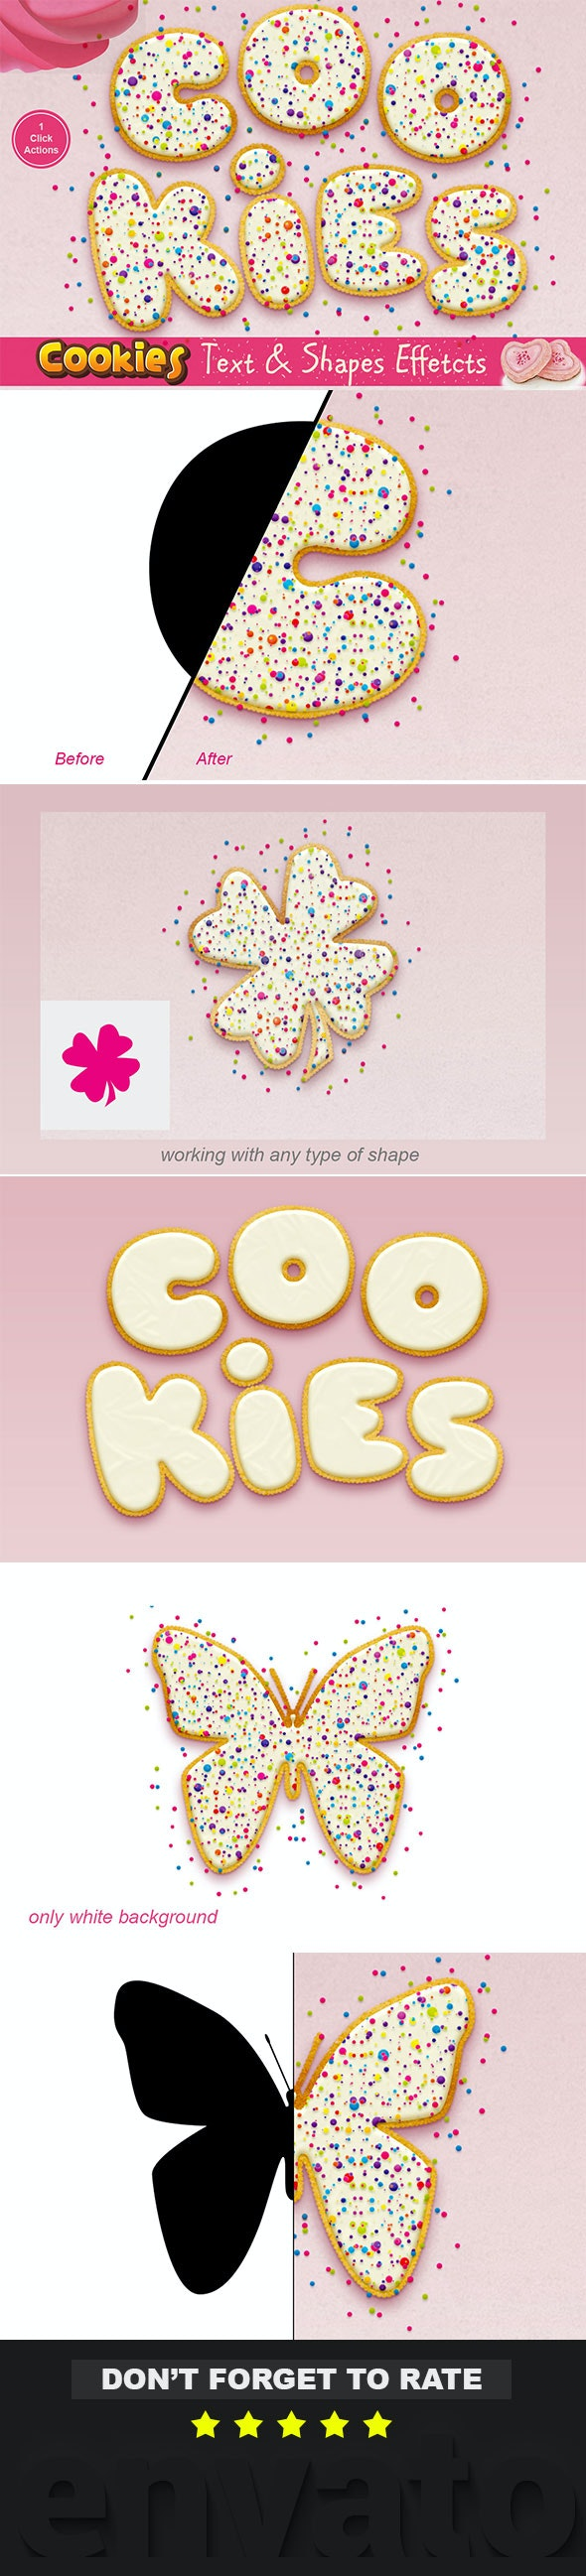 Cookies Text Effect Photoshop Action - Text Effects Actions